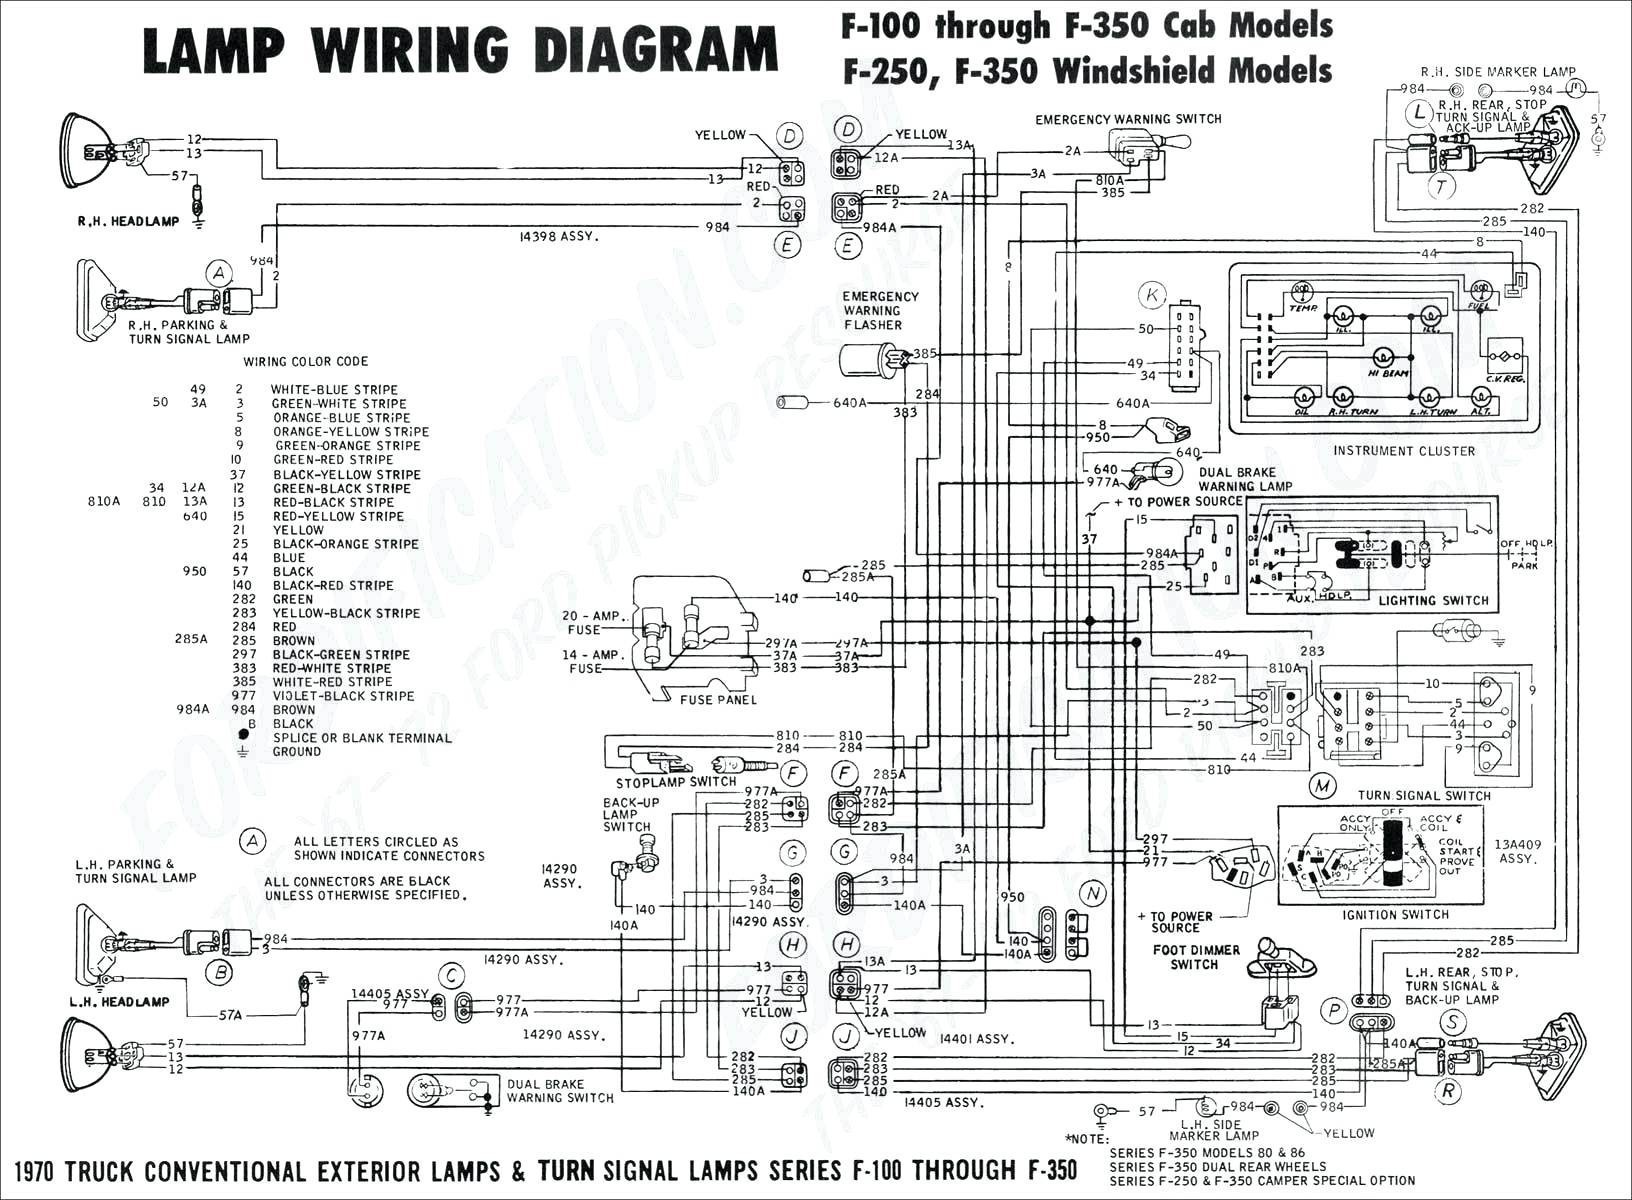 Ford Ranger Wiring Harness Diagram Wiring Harness Diagram Worksheet and Wiring Diagram • Of Ford Ranger Wiring Harness Diagram